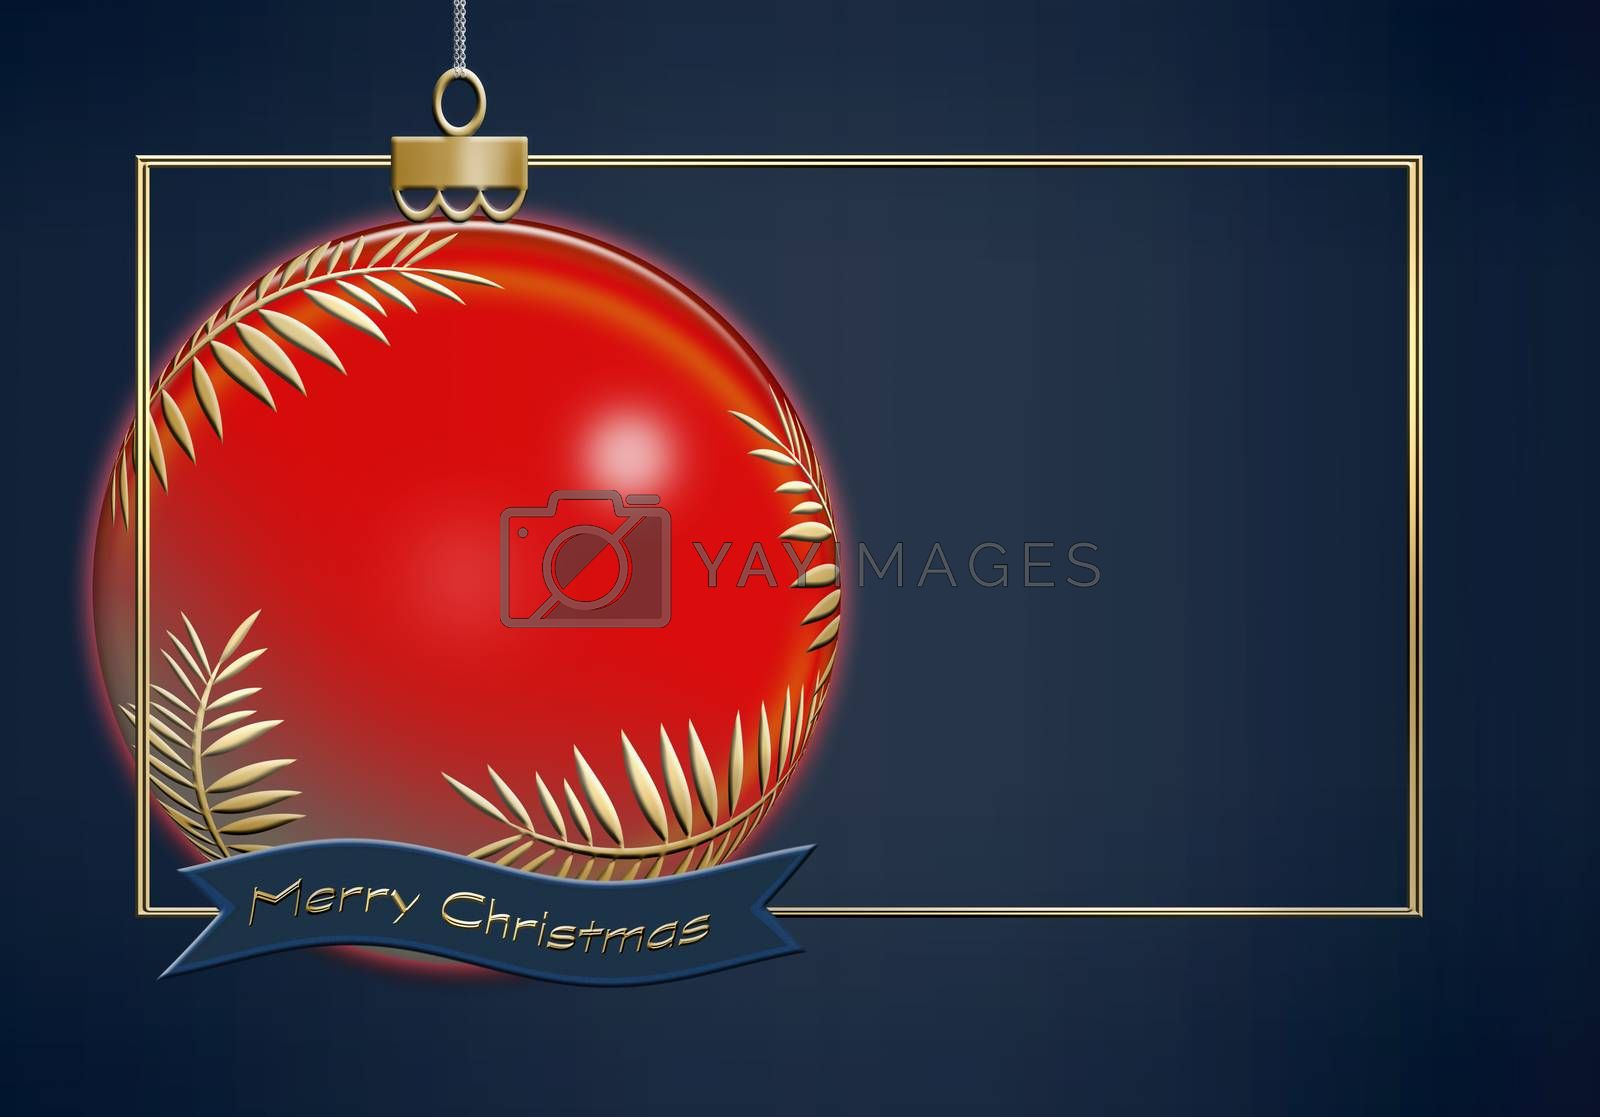 Hanging red Christmas ball made of gold leaves on blue background with gold frame. Minimalist greeting 2021 New Year card. Text Merry Christmas. 3D illustration